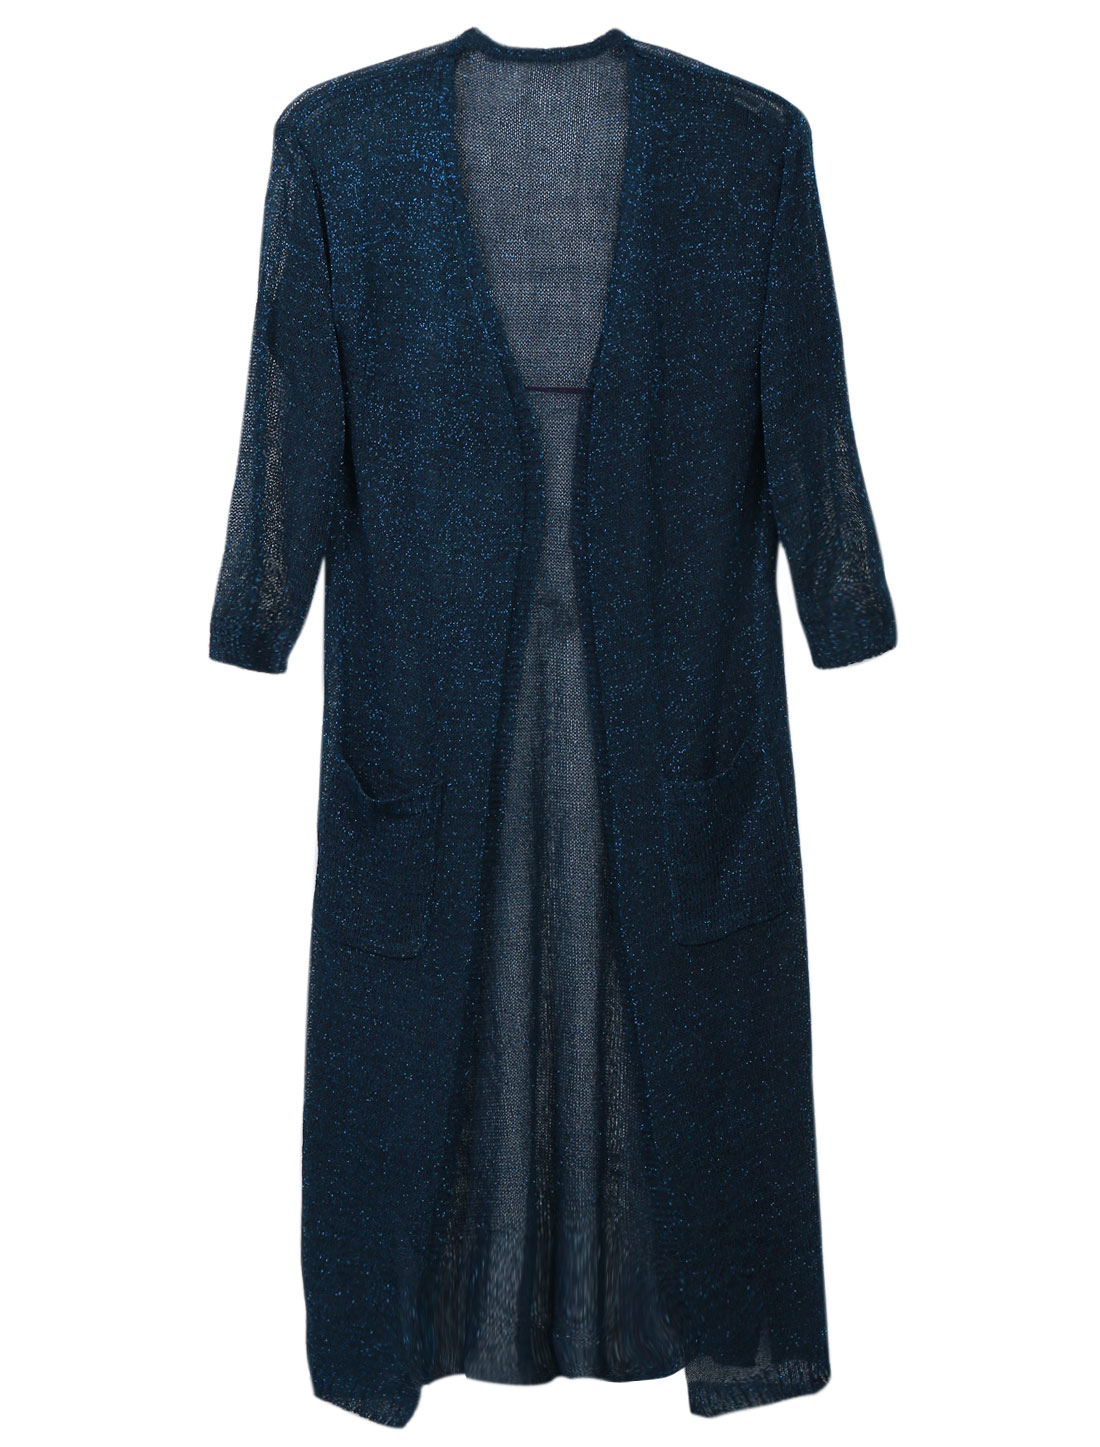 Women 3/4 Sleeve Opening Front Pockets Front Split Side Long Cardigan Navy Blue XS